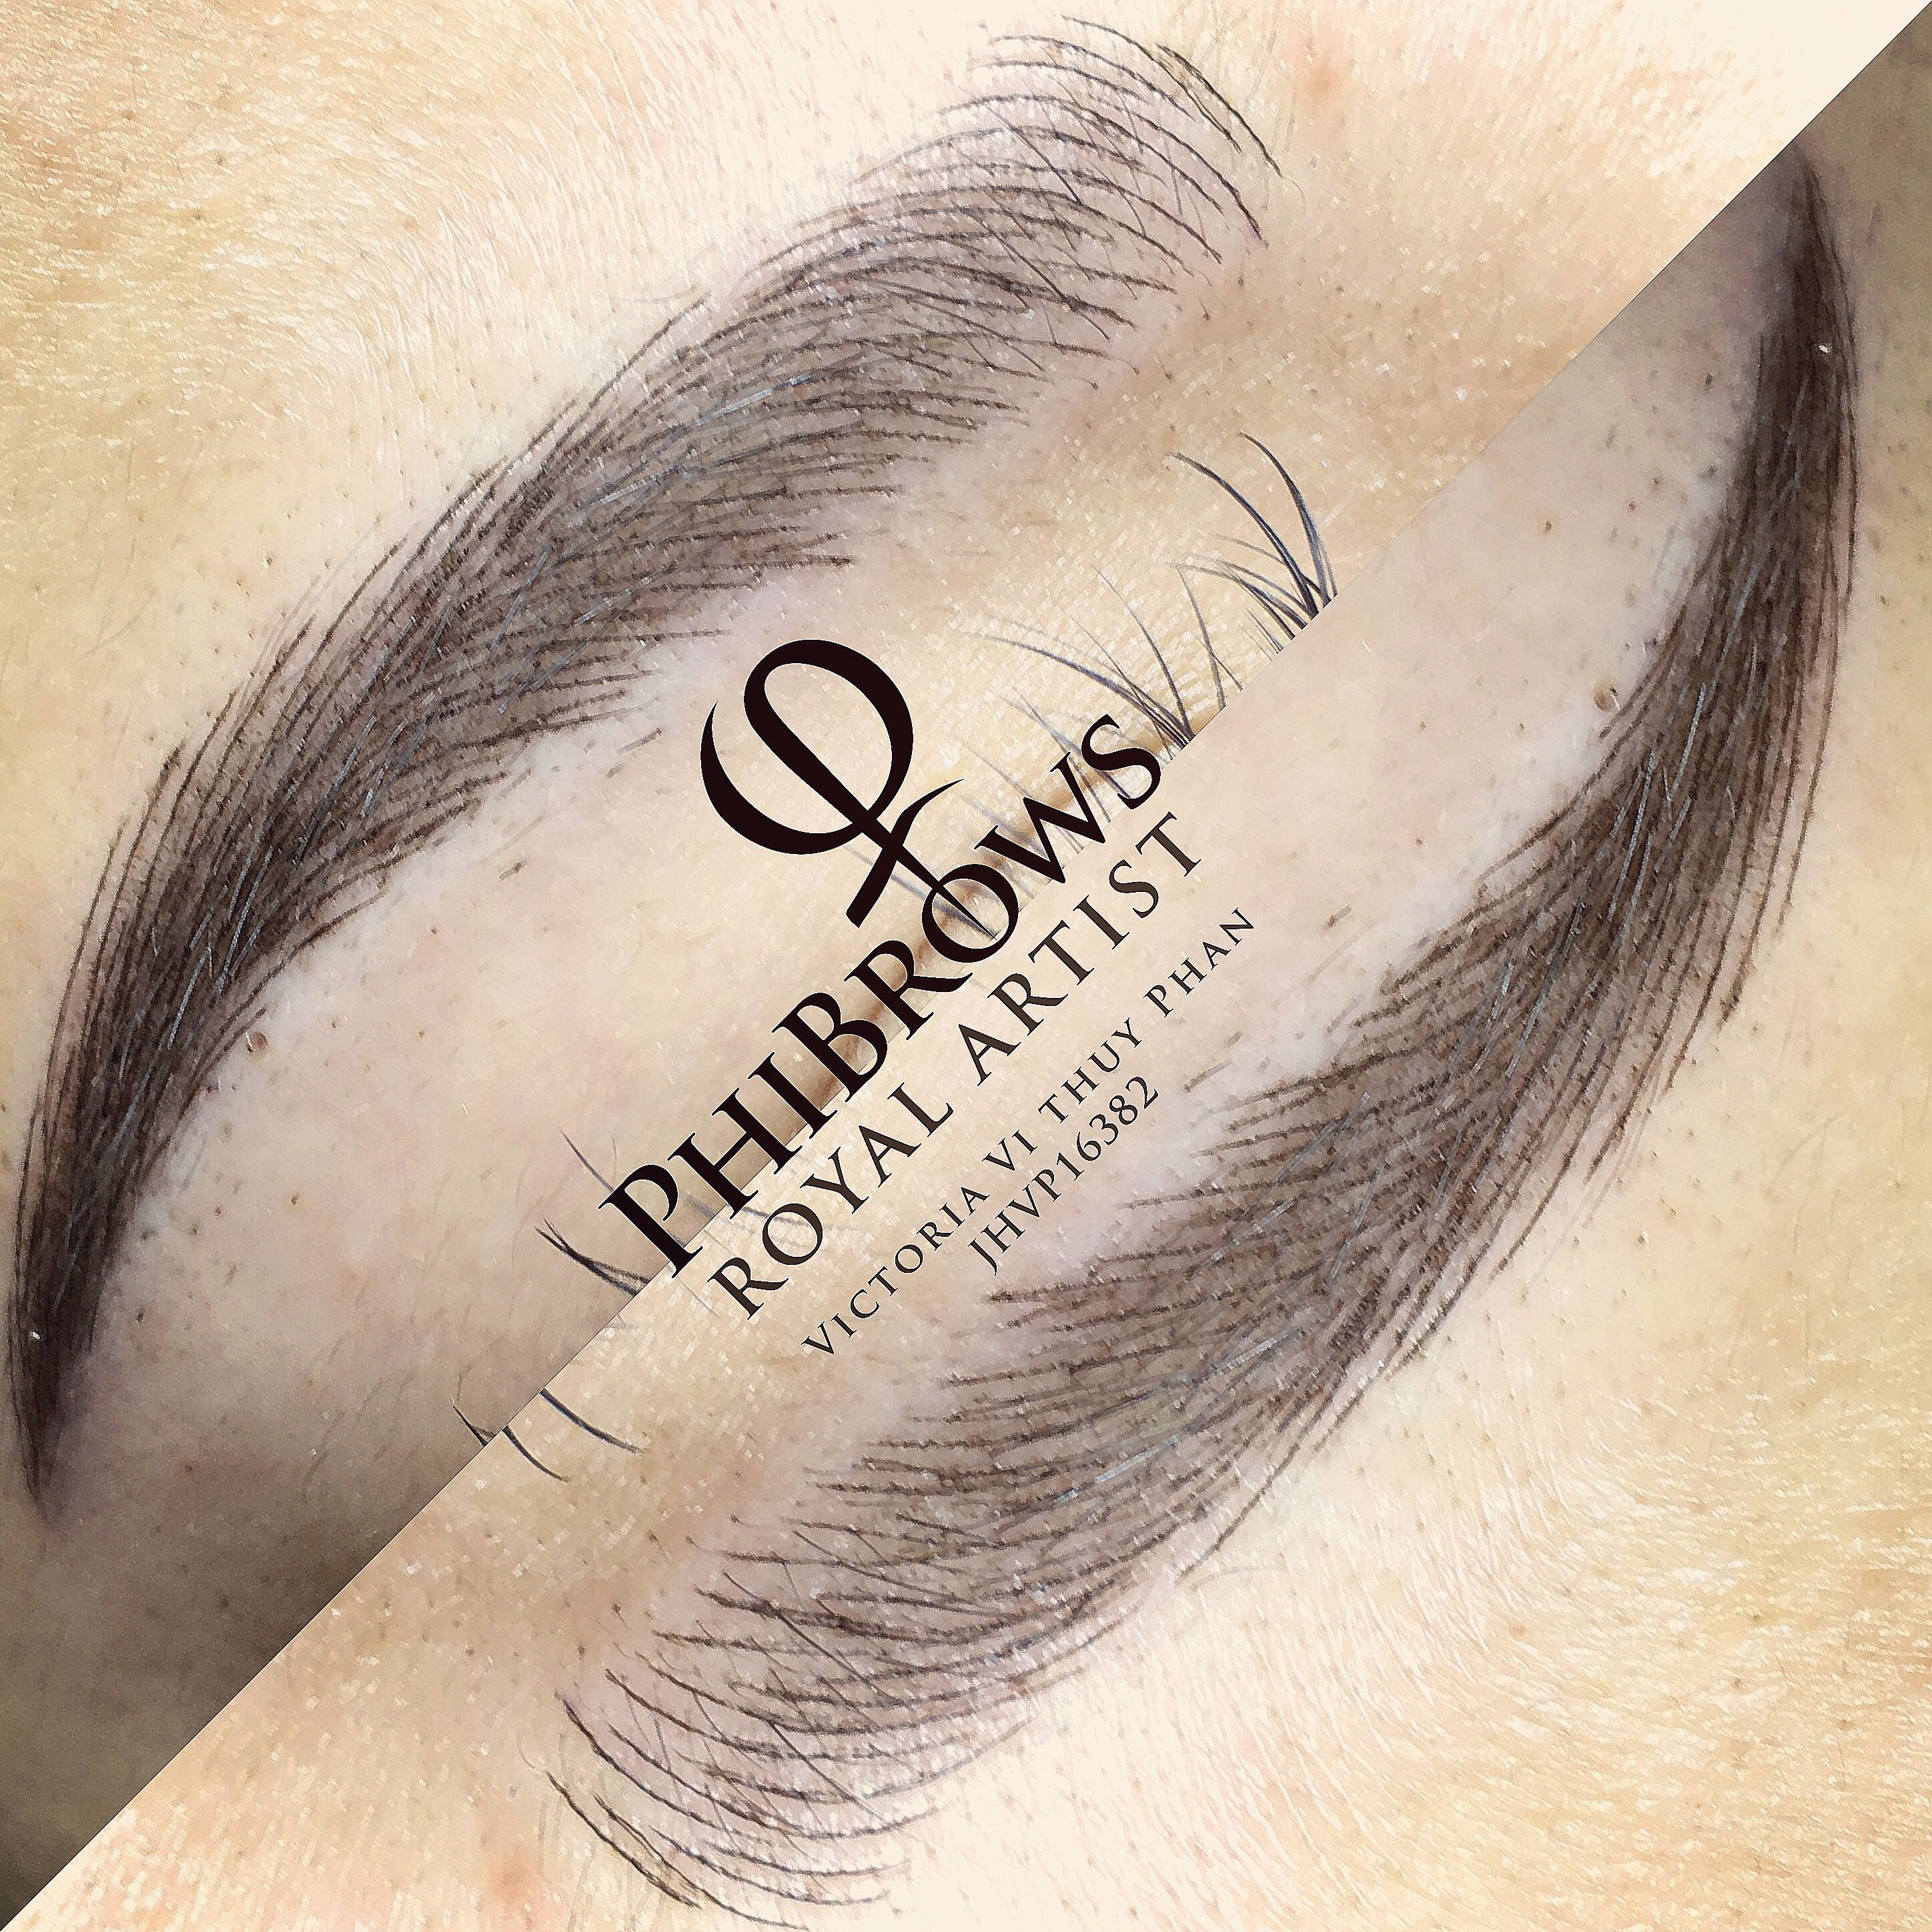 Pin By Thuyvi Phibrows Phan On Victoria Brows Microblading